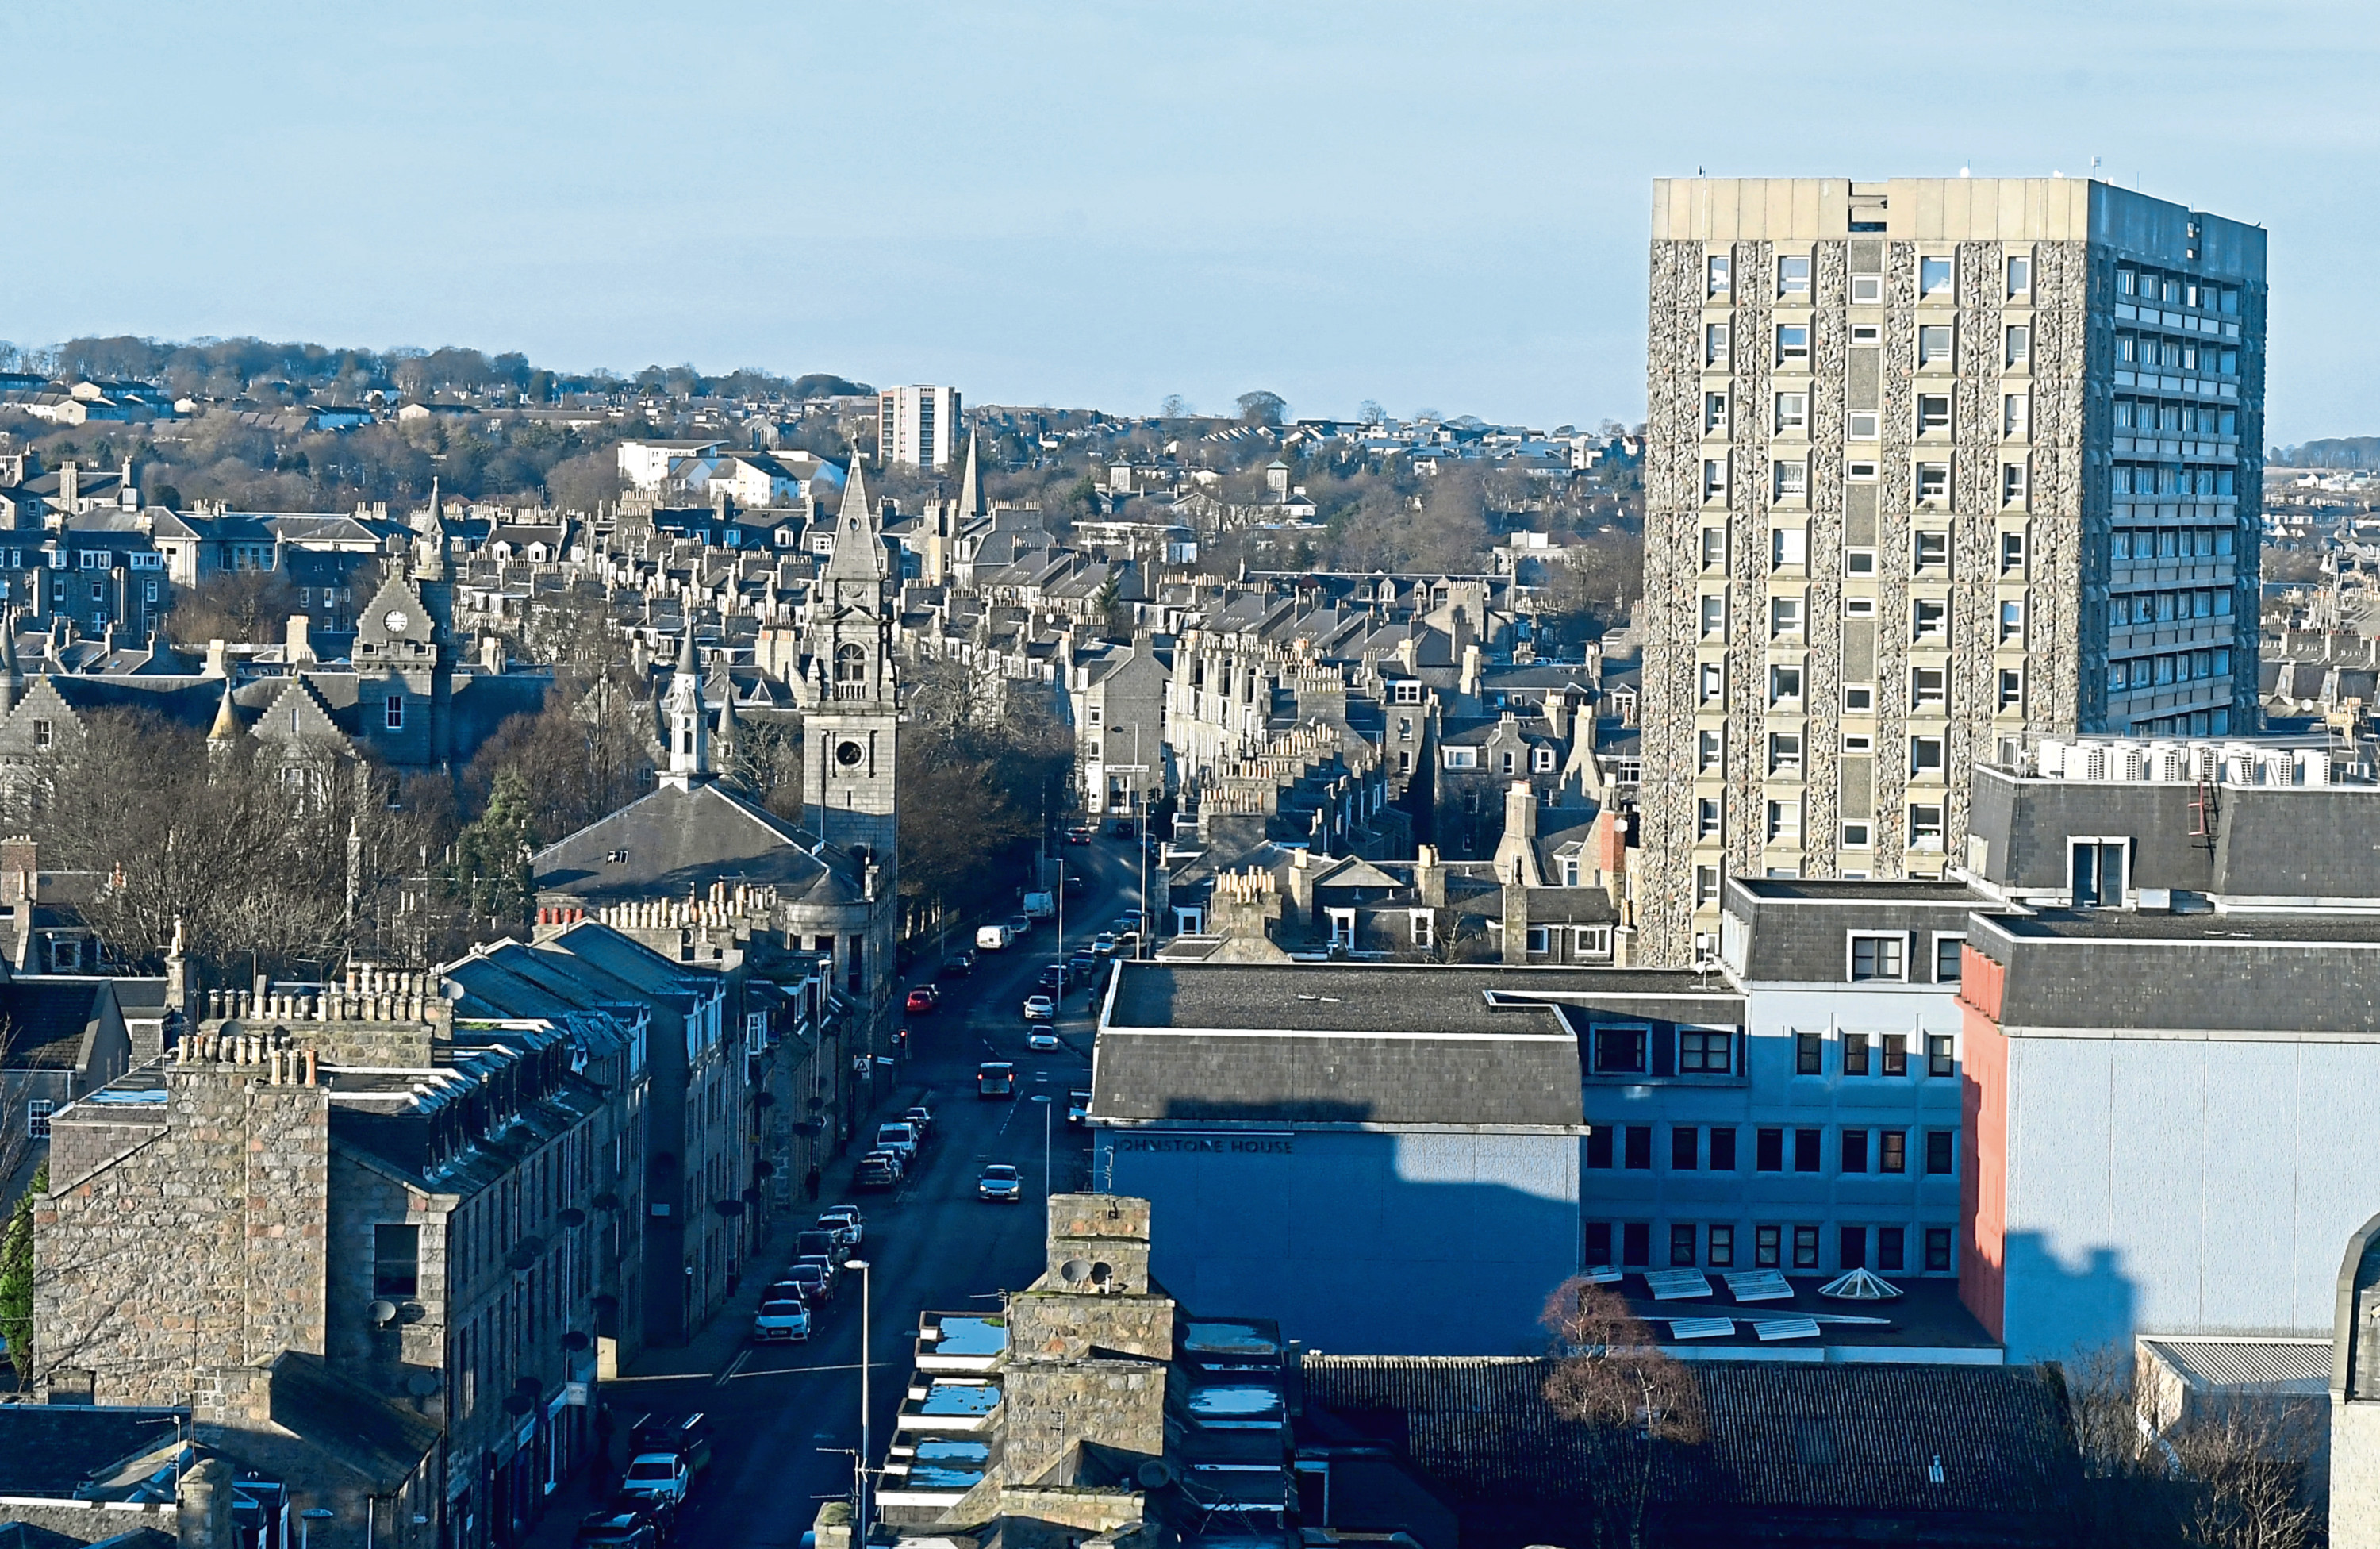 More than 900 people in Aberdeen have needed a crisis grant